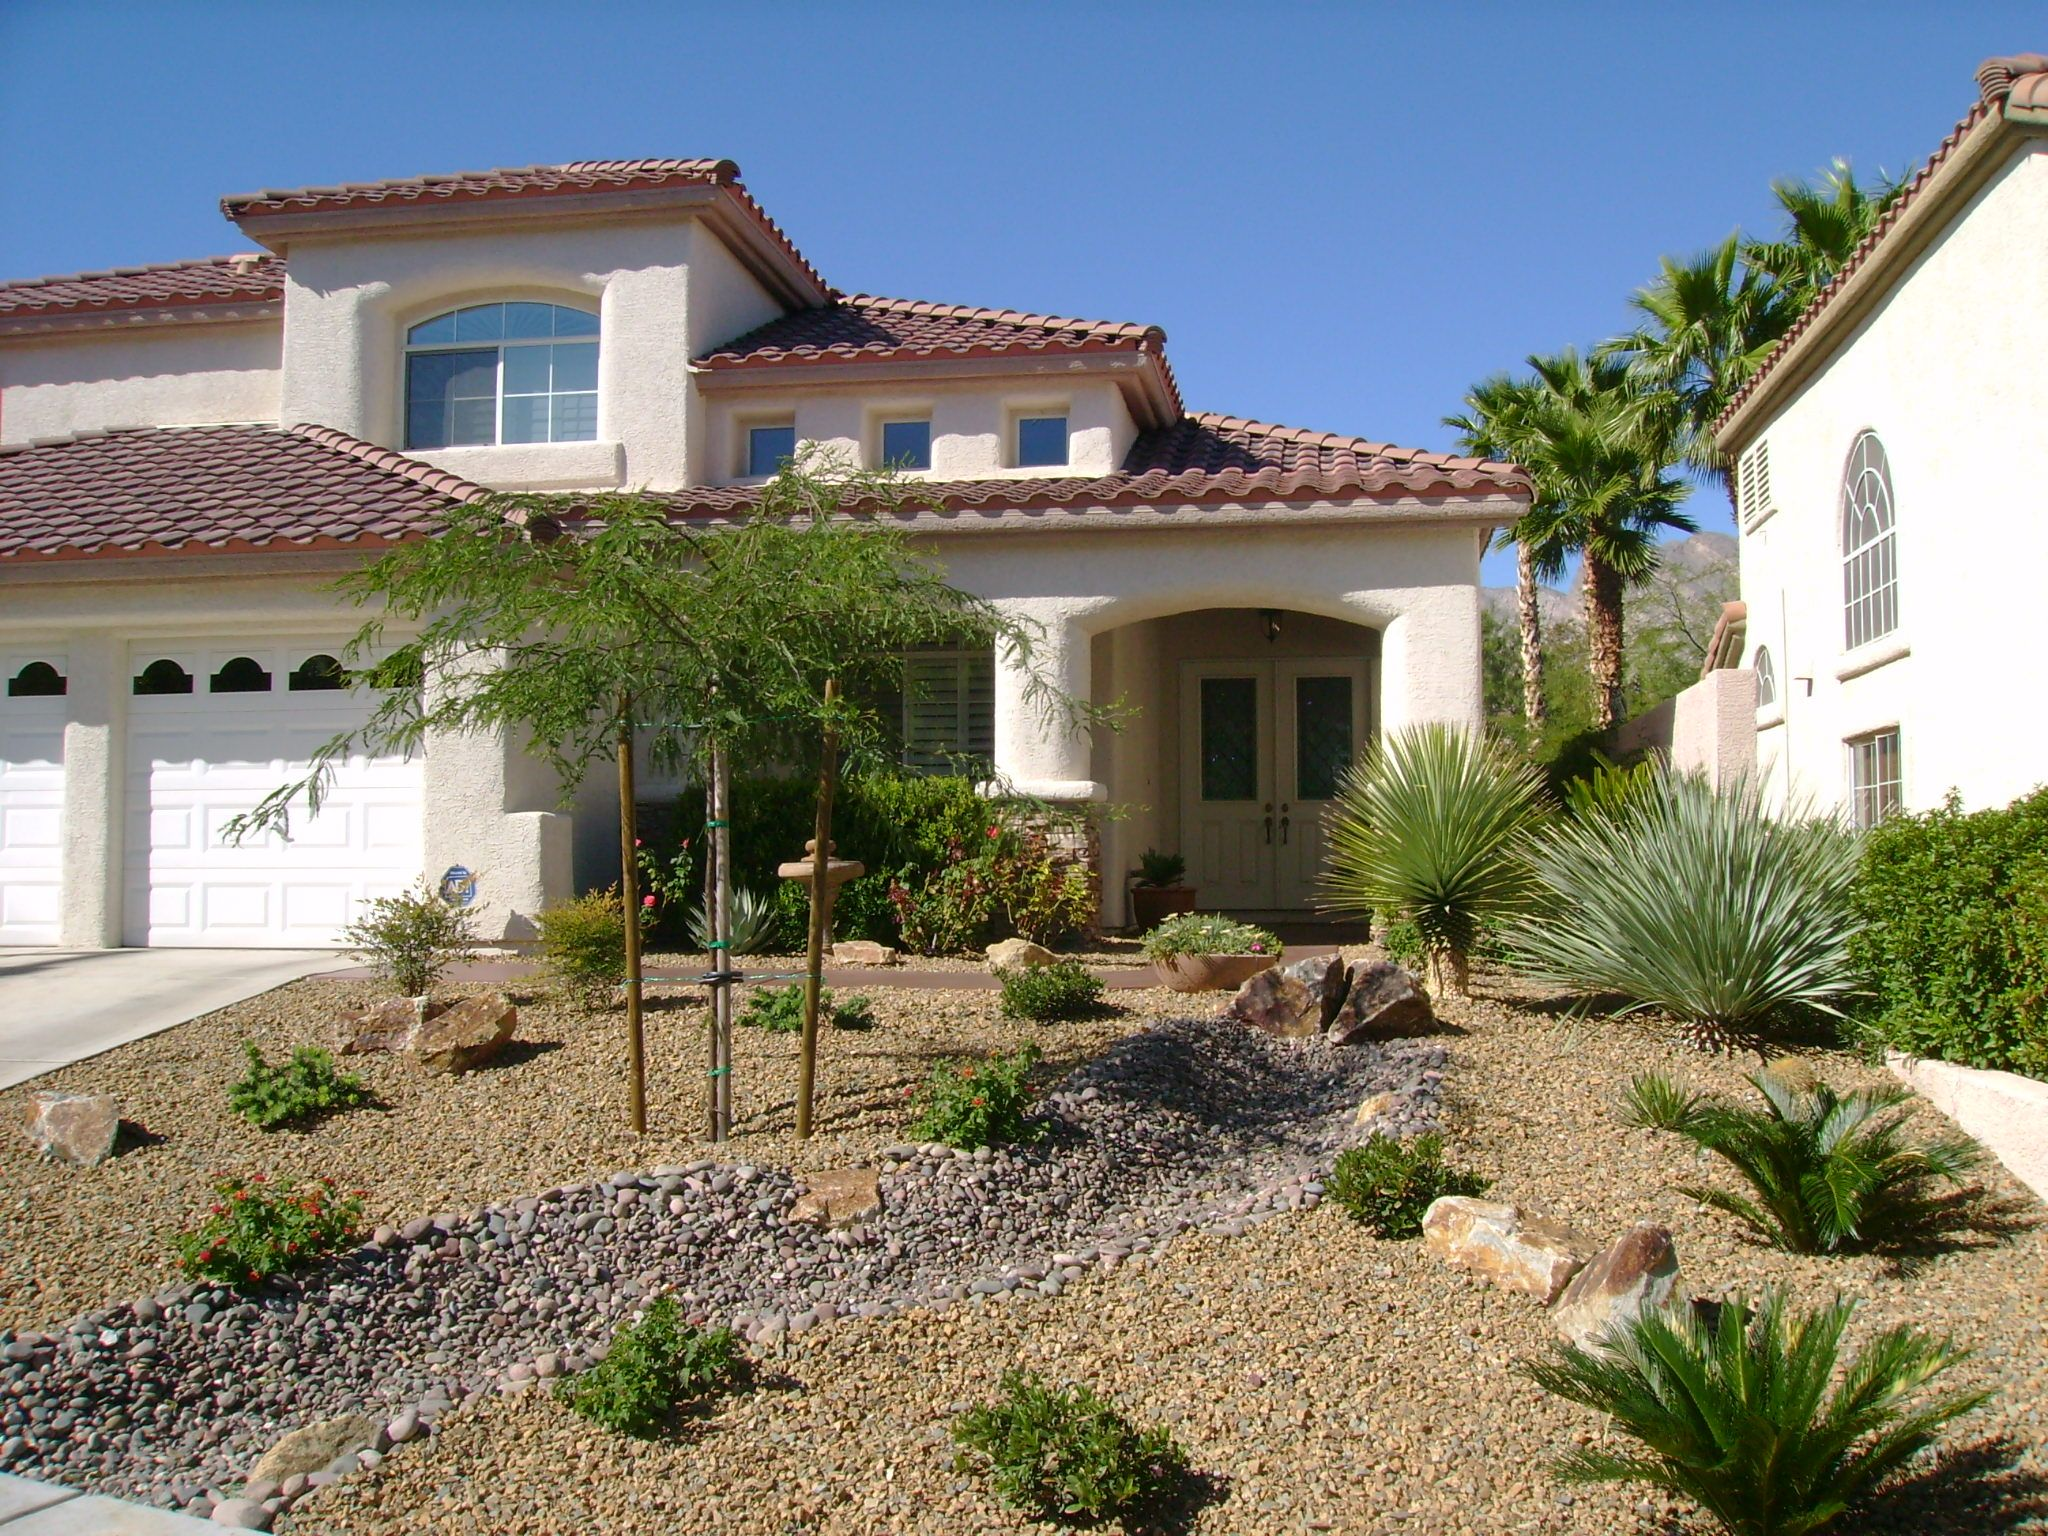 How to Make Desert Landscape Design | Desert landscaping ... on Backyard Desert Landscaping Ideas On A Budget  id=43041